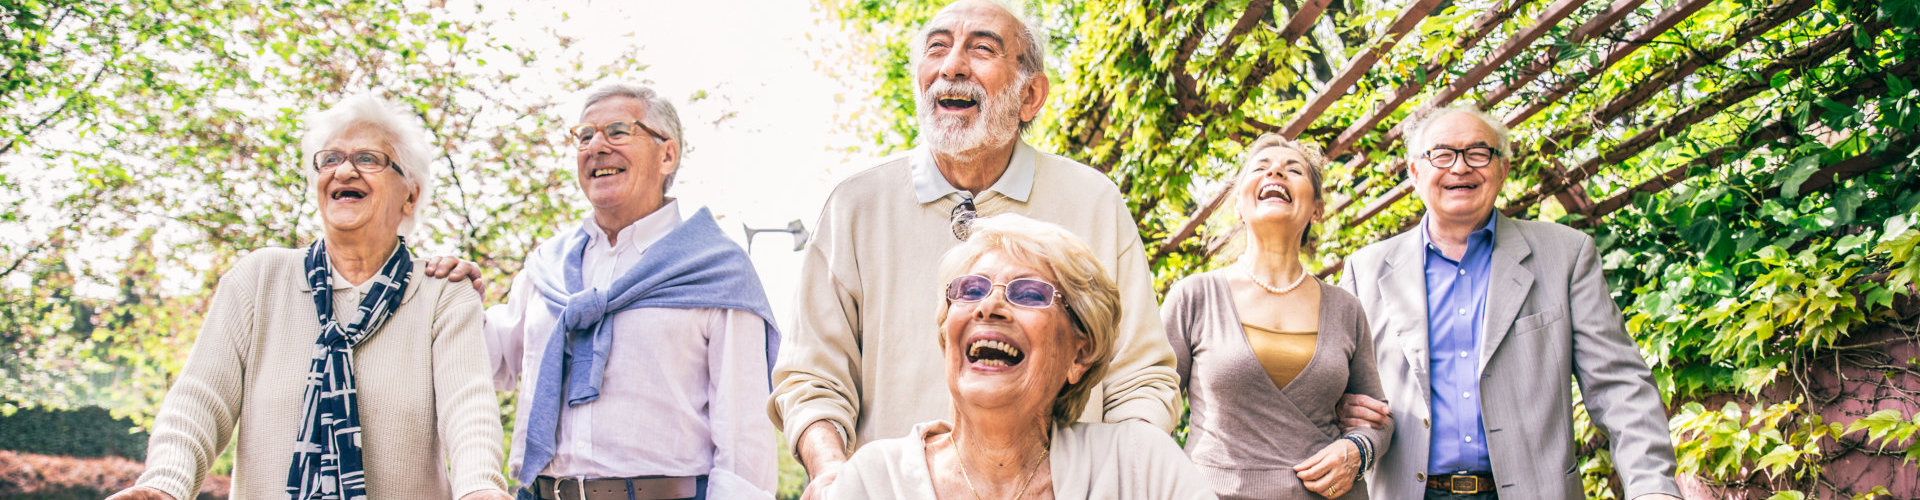 senior people laughing together